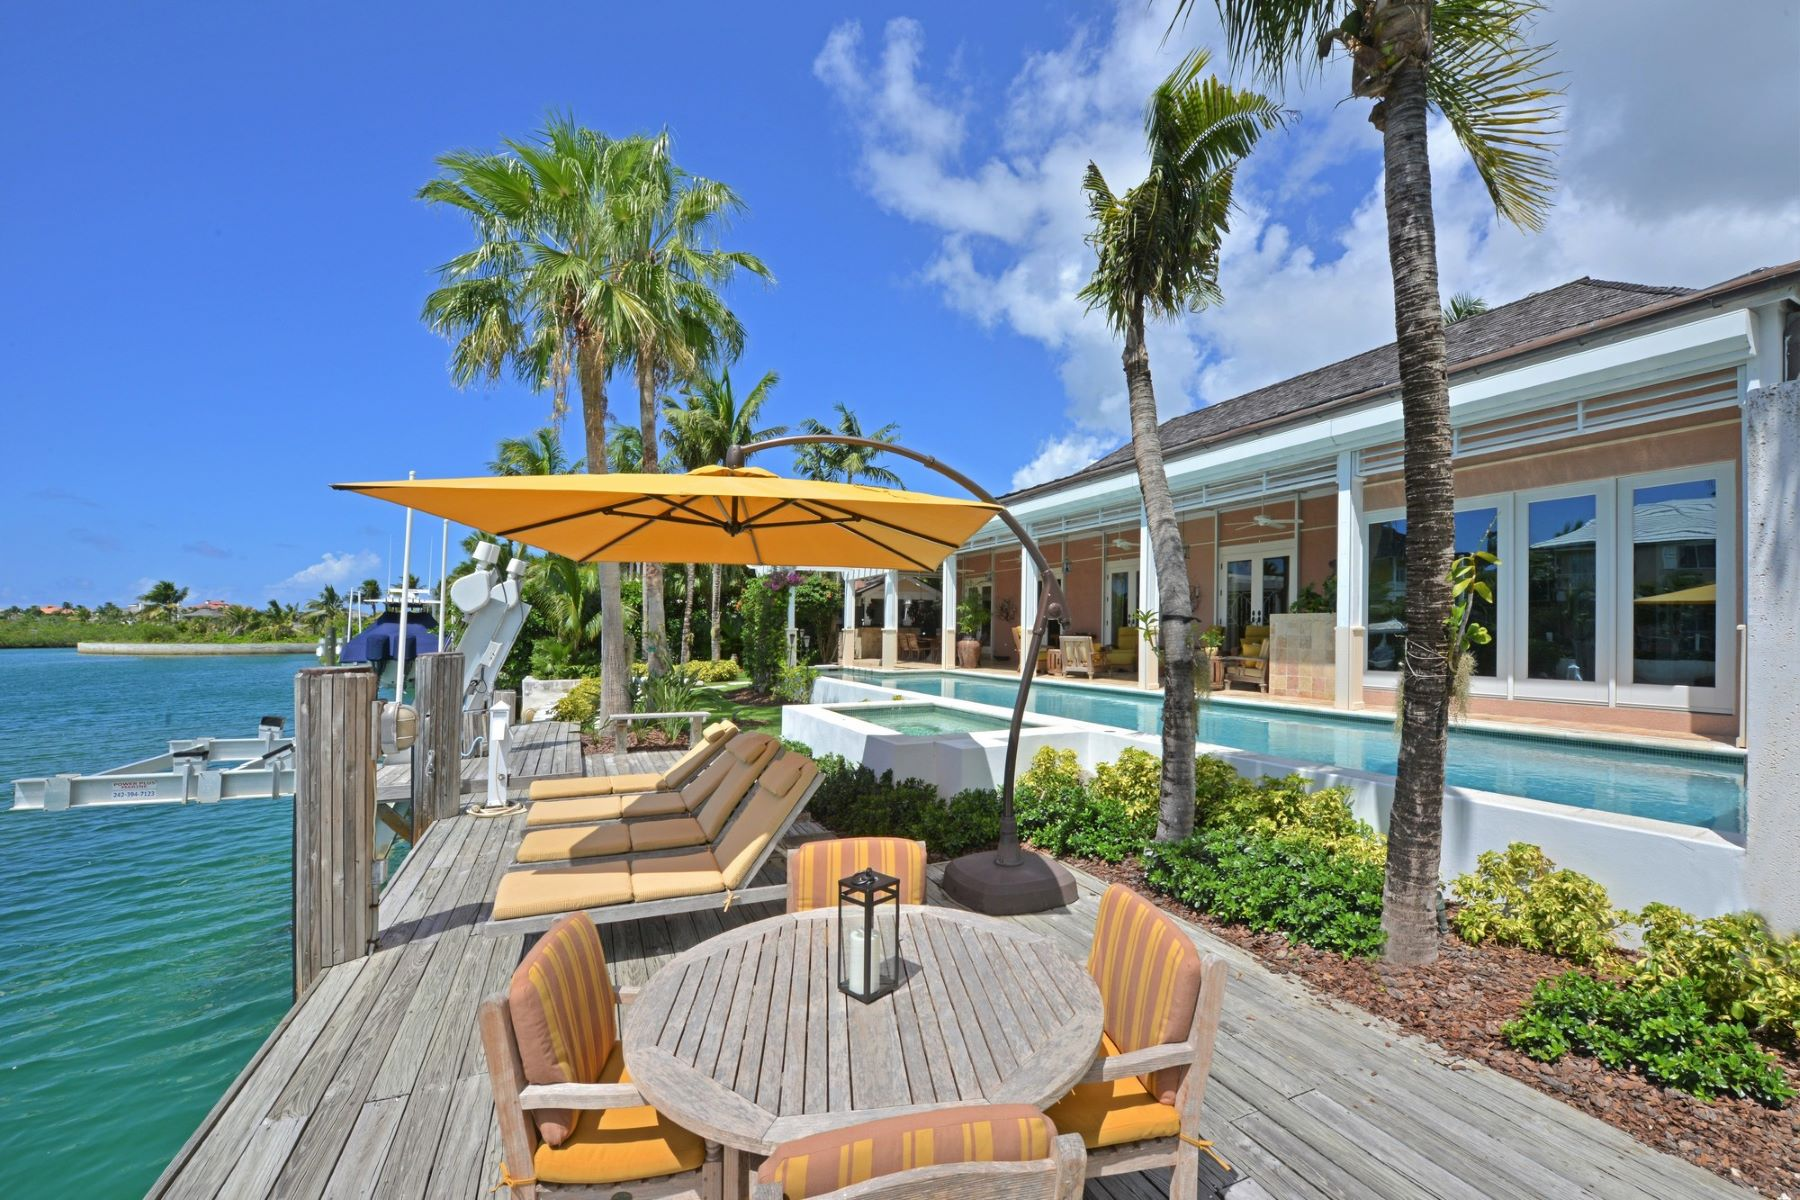 Additional photo for property listing at 8 Beach Island Islands At Old Fort Bay, Old Fort Bay, Nassau And Paradise Island Bahamas